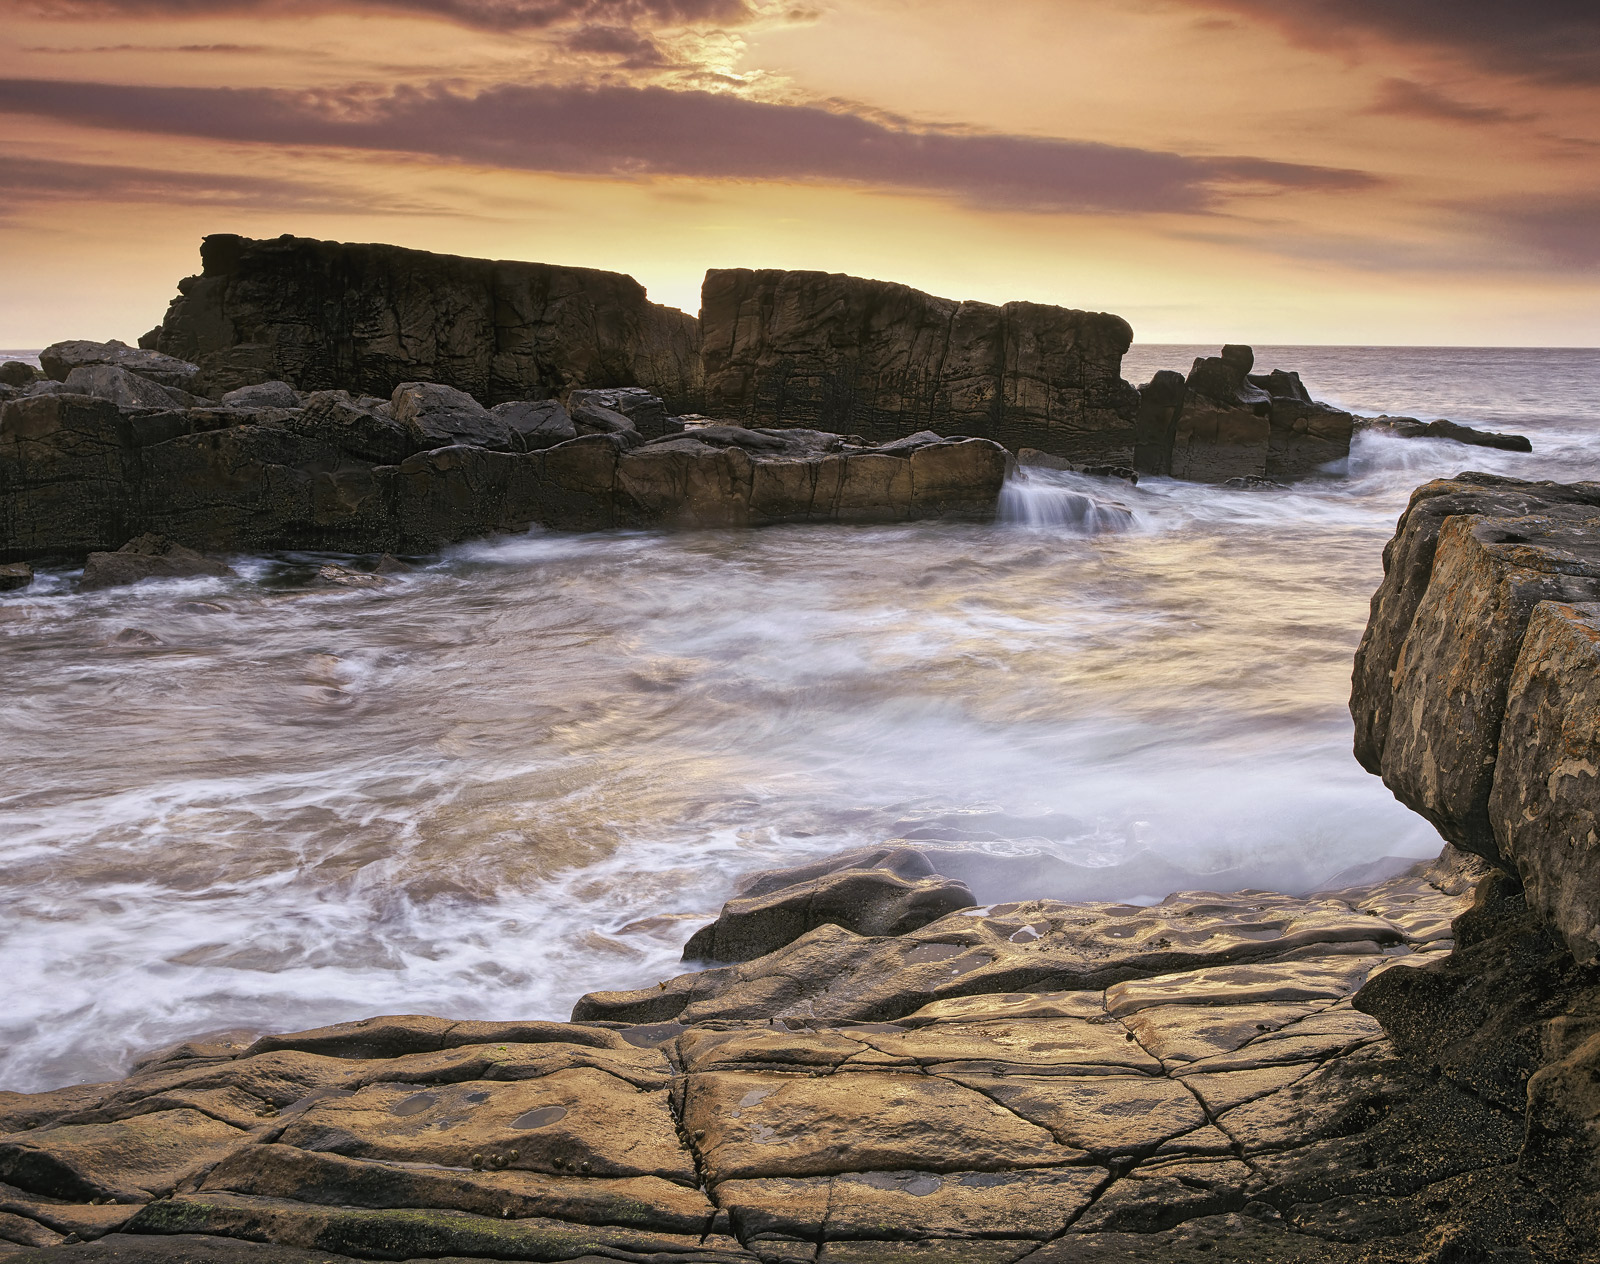 This very popular outcrop of rock is locally known as the Daisy Rocks and is situated at the end of Hopeman's little sandy cove...